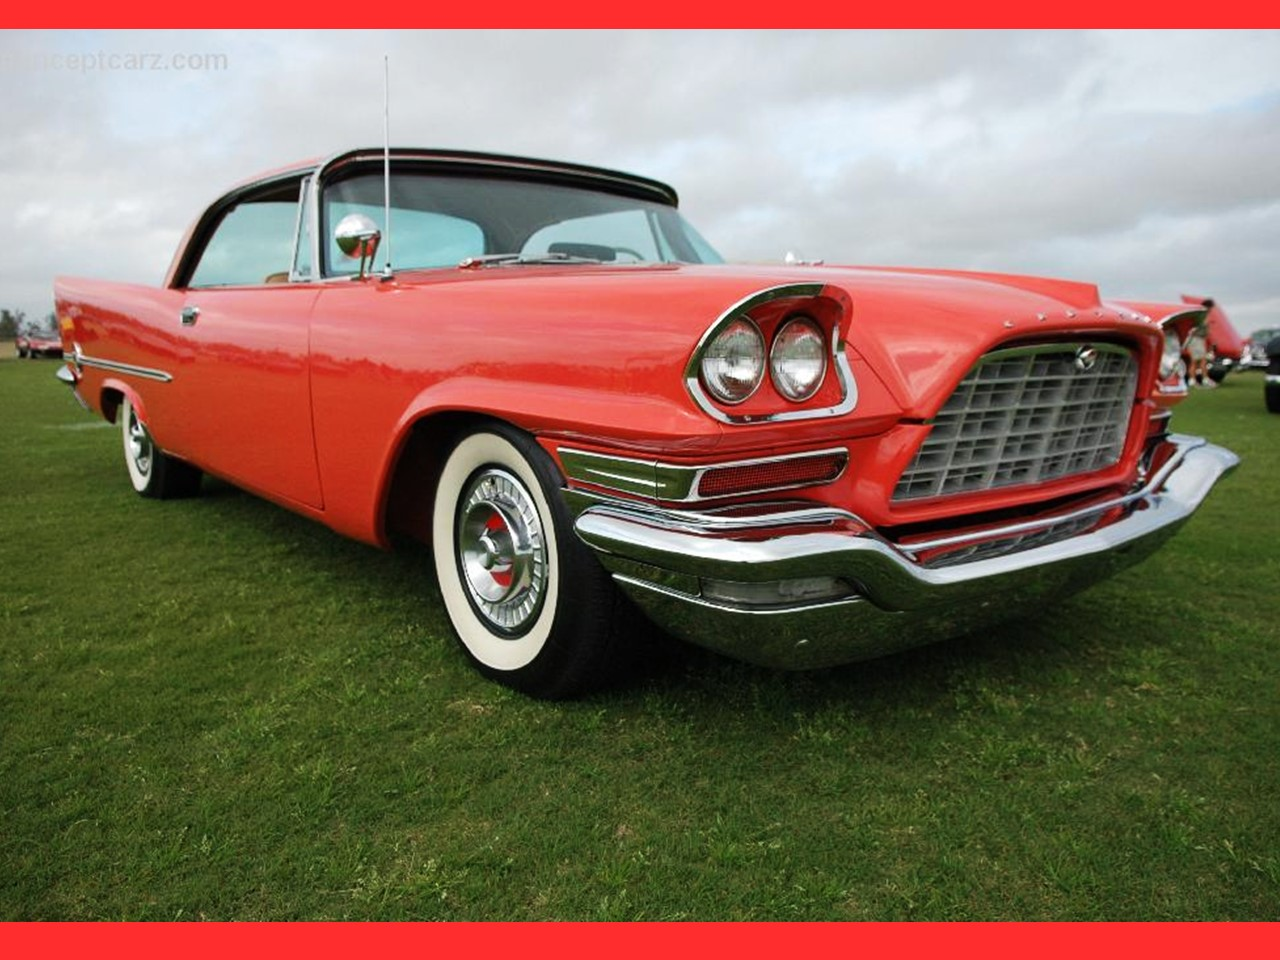 1957 chrysler 300c the beautiful brute notoriousluxury for Chrysler 300c